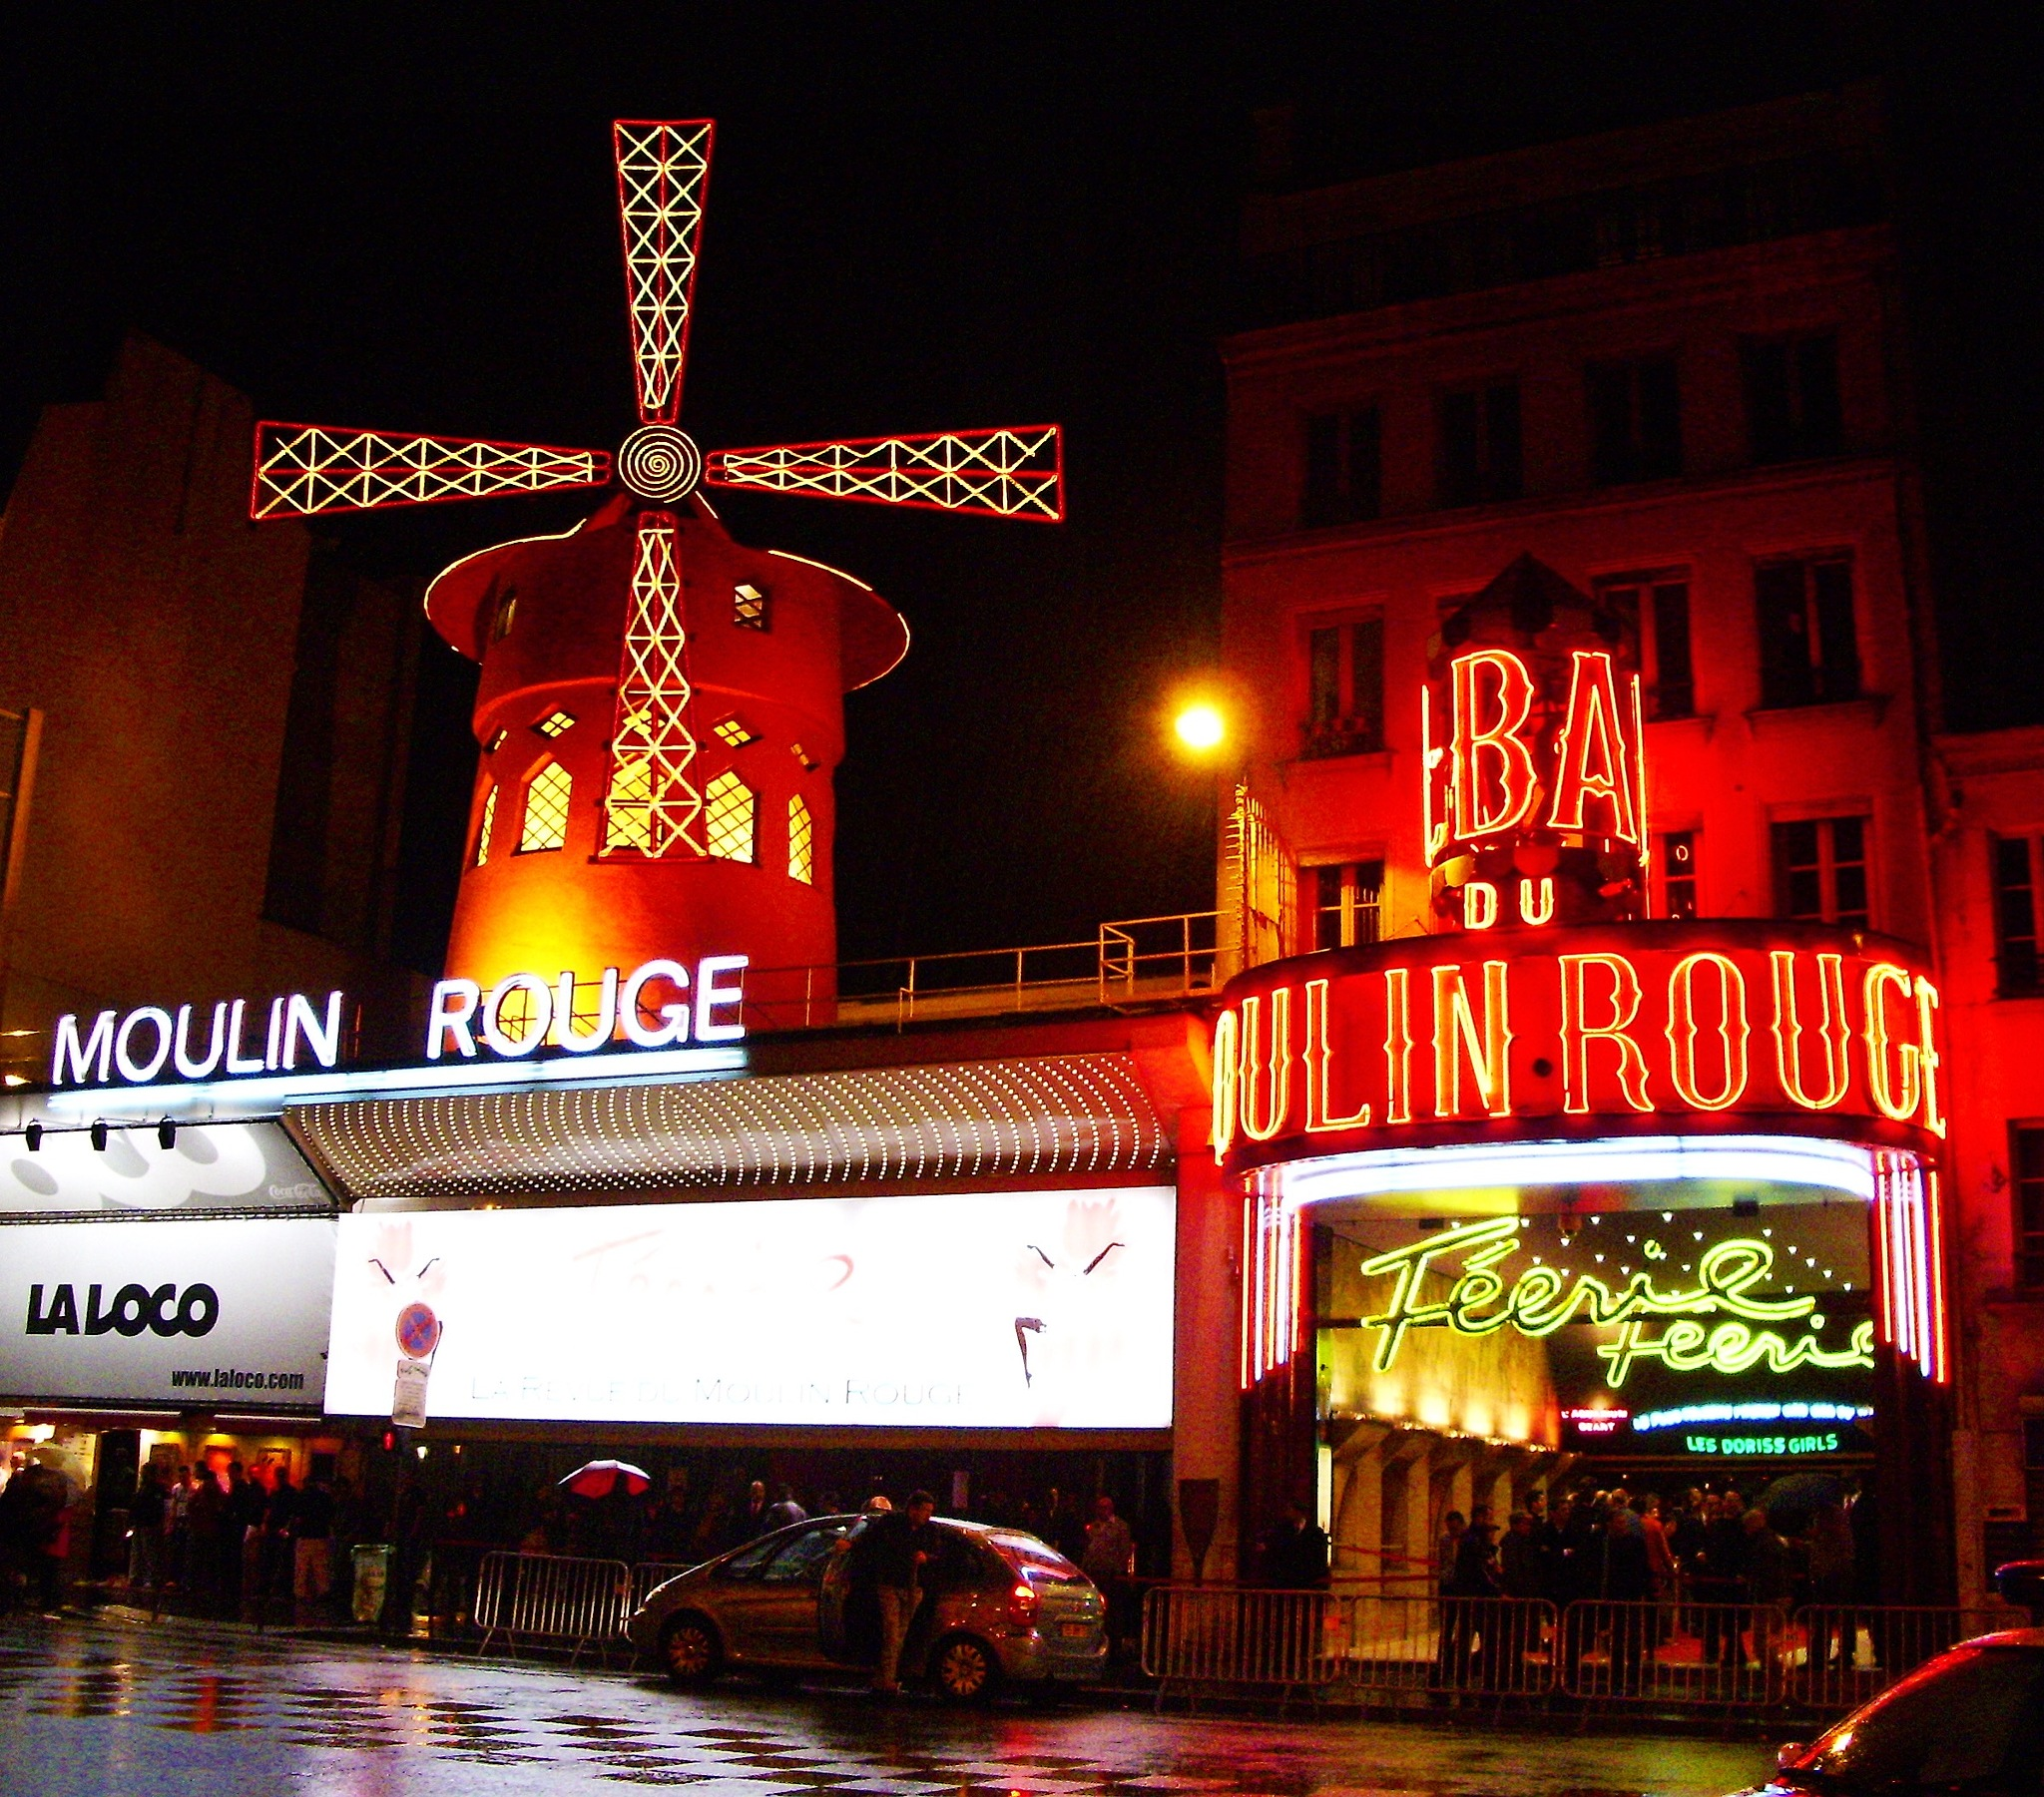 Moulin Rouge by night by Resaxela